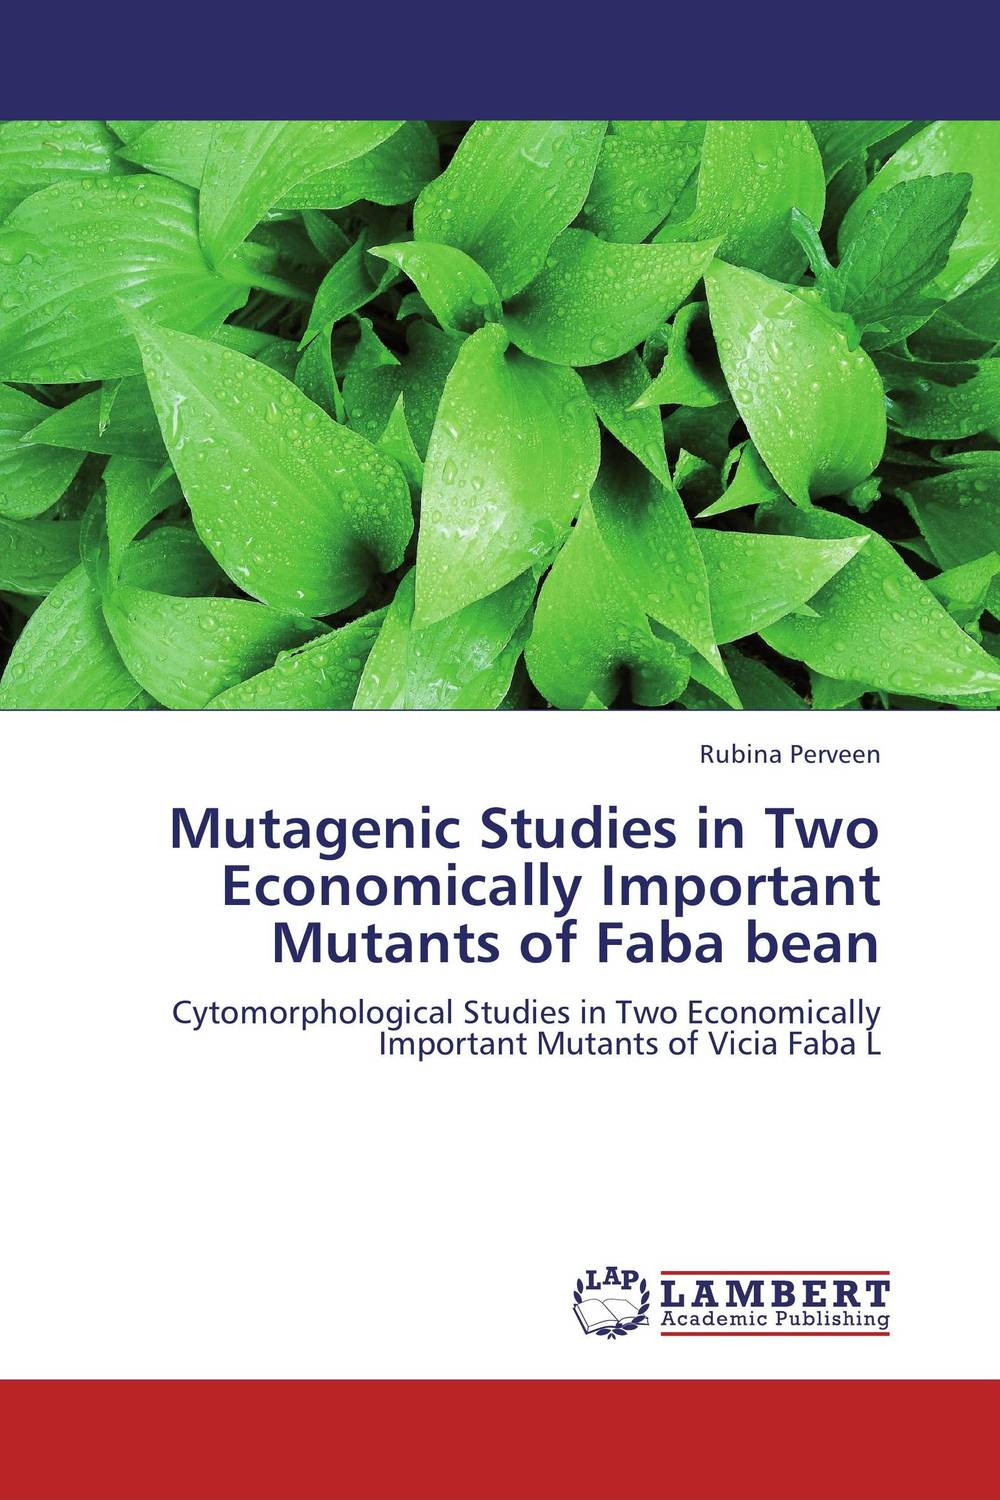 Mutagenic Studies in Two Economically Important Mutants of Faba bean seed dormancy and germination